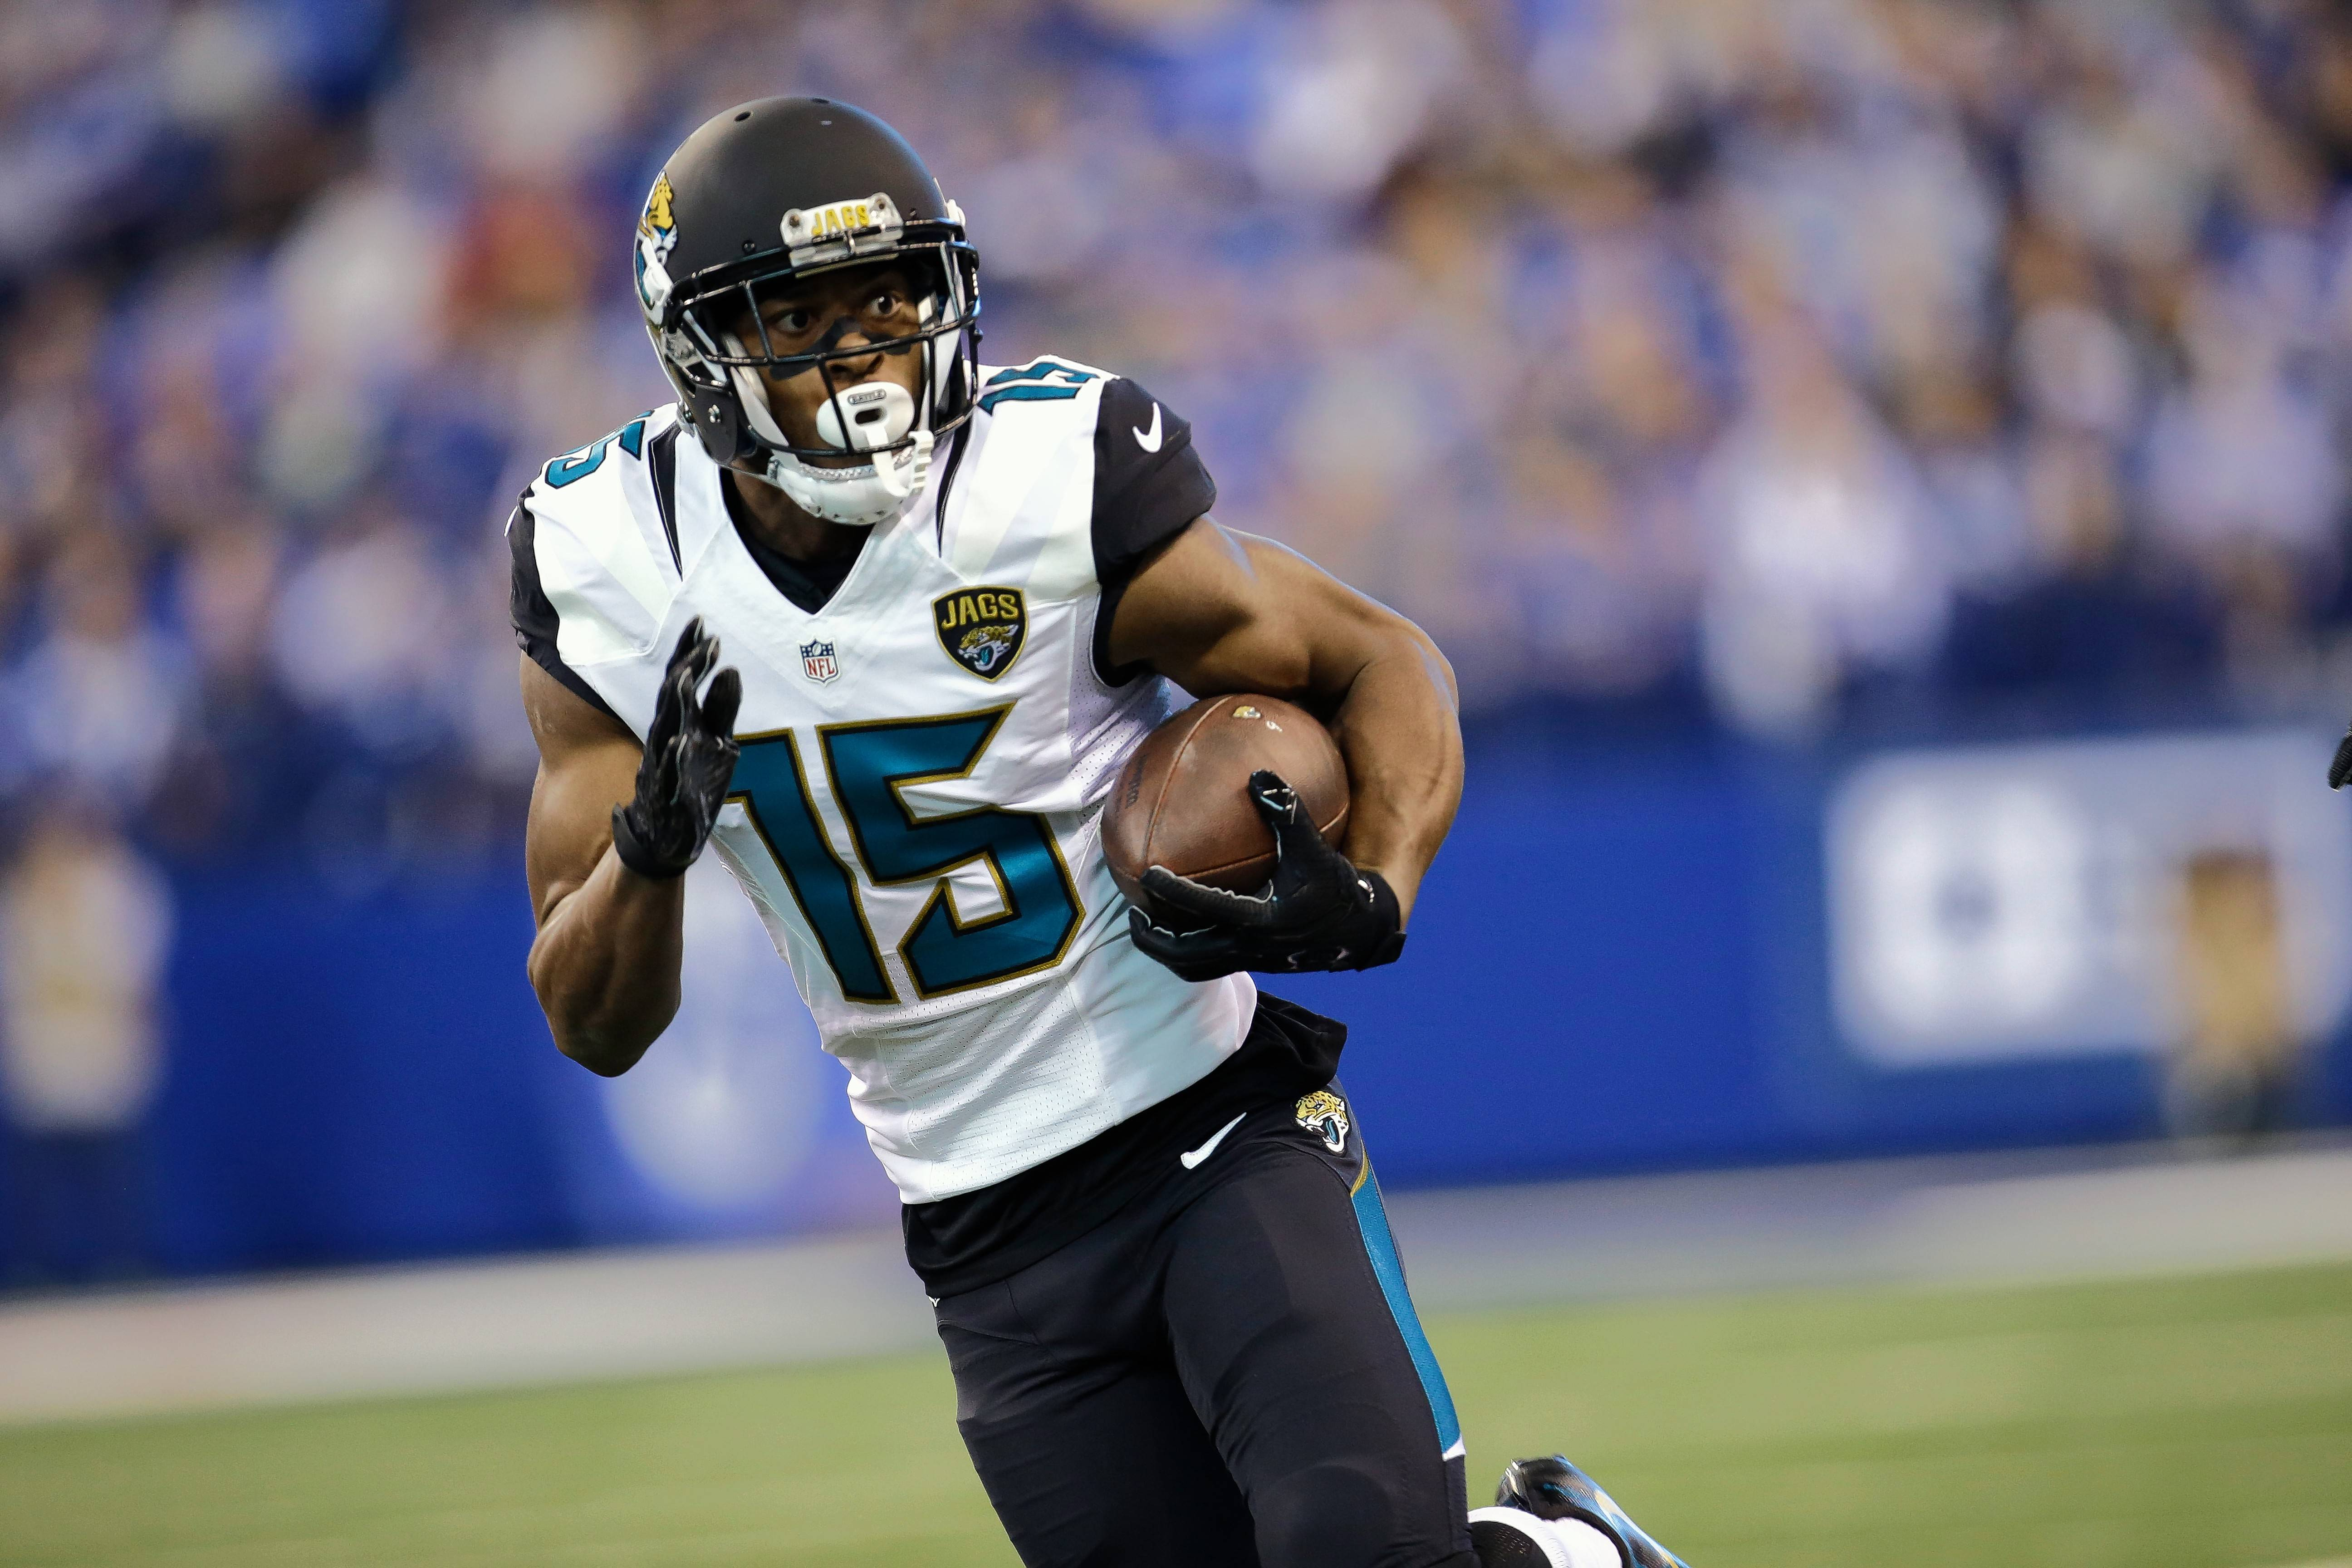 Although he missed most of last season to a knee injury, Jacksonville Jaguars wide receiver Allen Robinson is a likely free-agent target for the Chicago Bears.